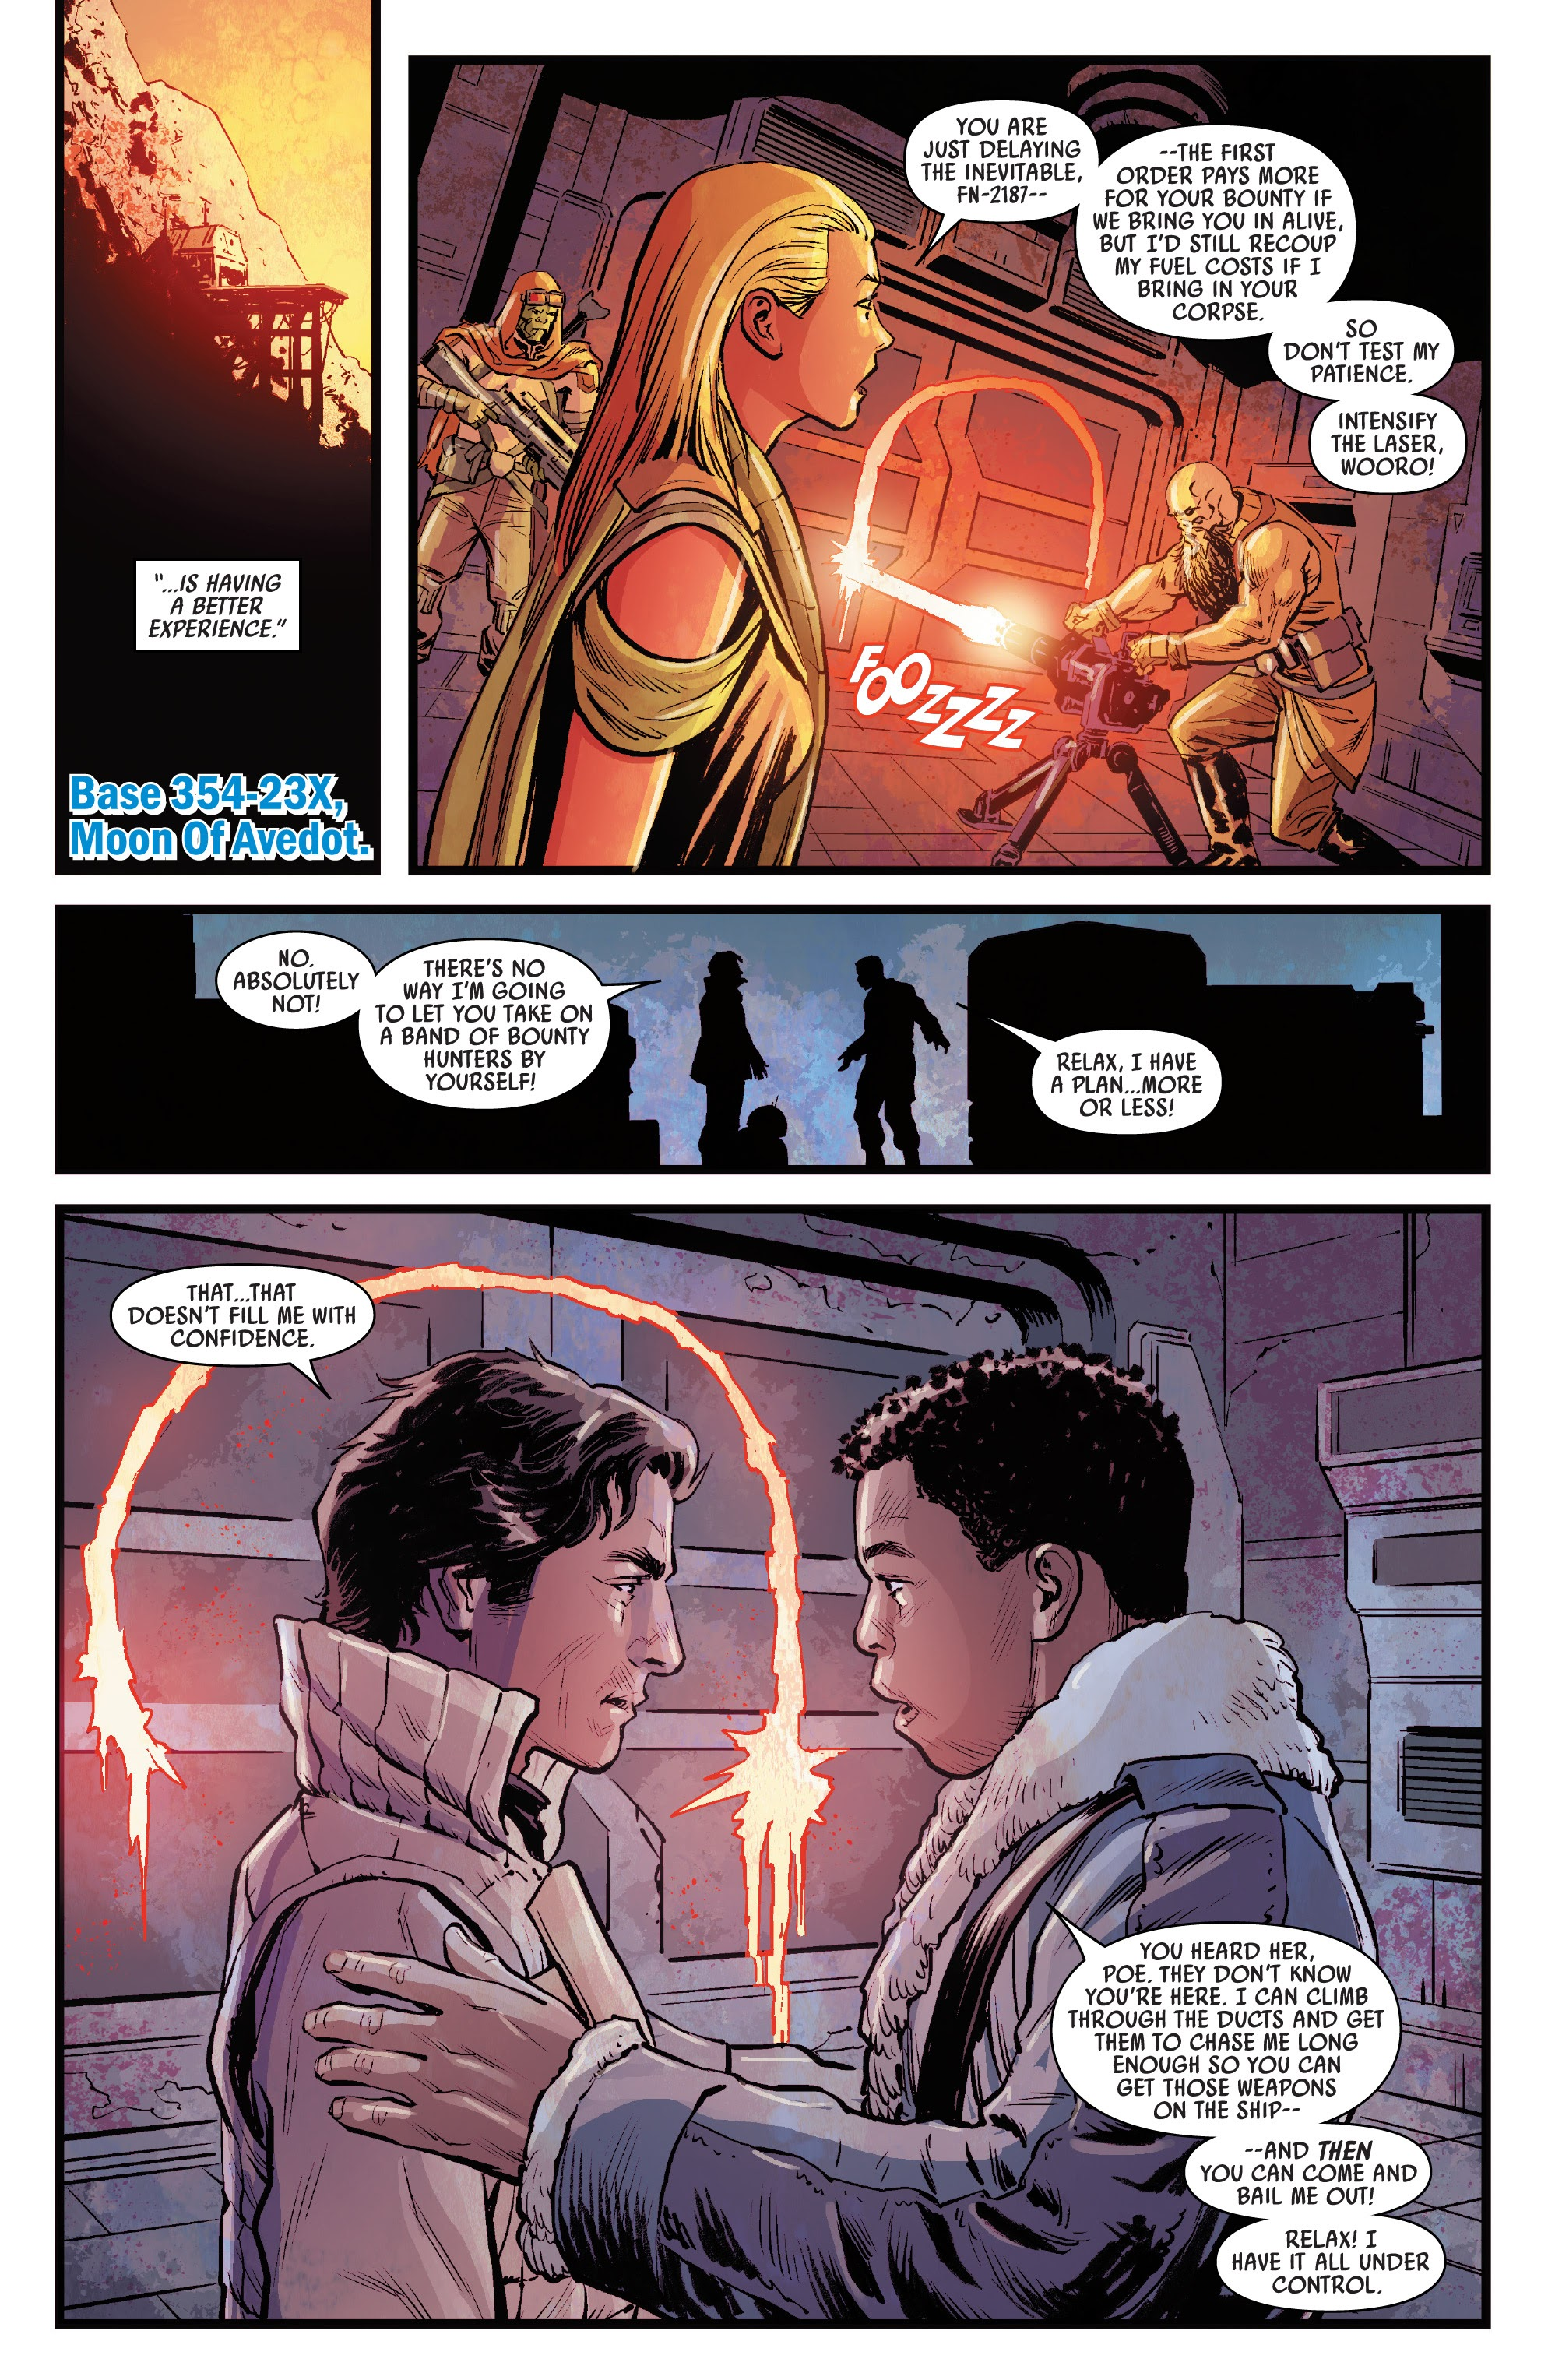 Journey To Star Wars The Rise Of Skywalker Allegiance 3 Read Journey To Star Wars The Rise Of Skywalker Allegiance Issue 3 Page 7